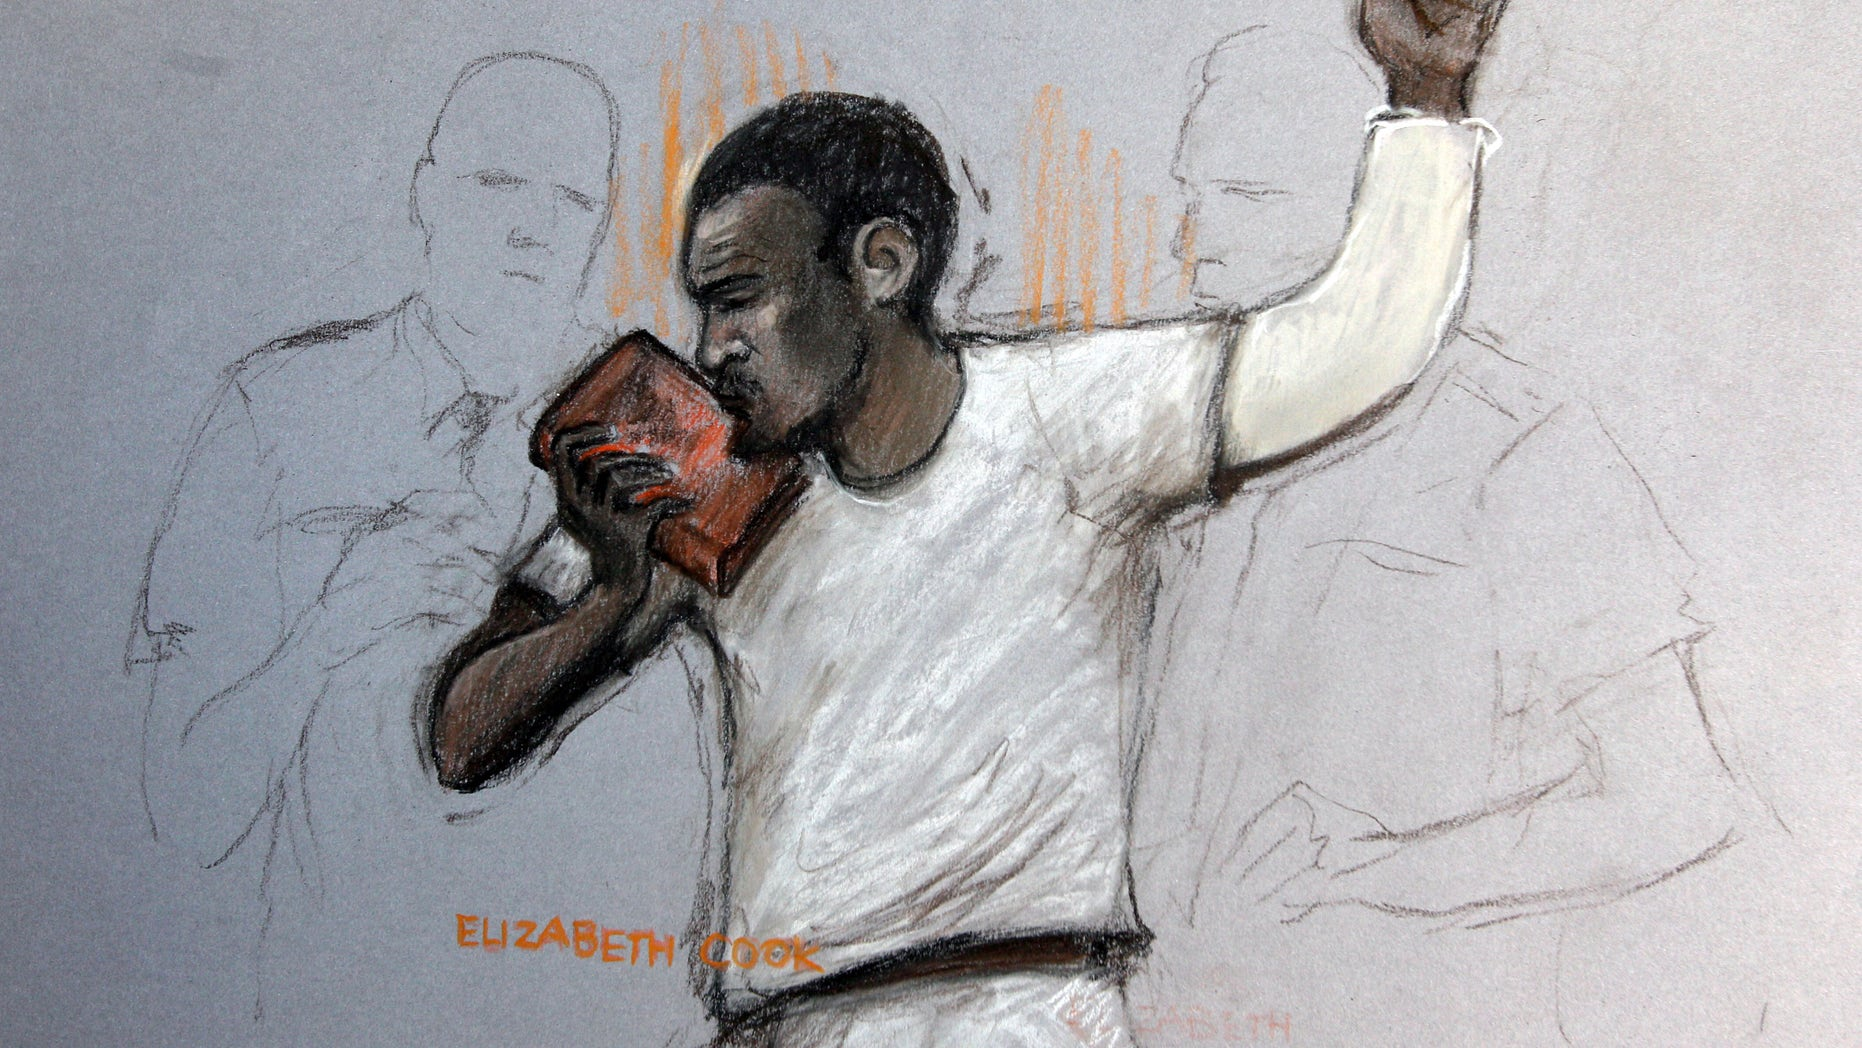 June 3, 2013 - In this court artist sketch by Elizabeth Cook, suspect Michael Adebolajo kisses the Koran, as he appears at Westminster Magistrates Court,  London.